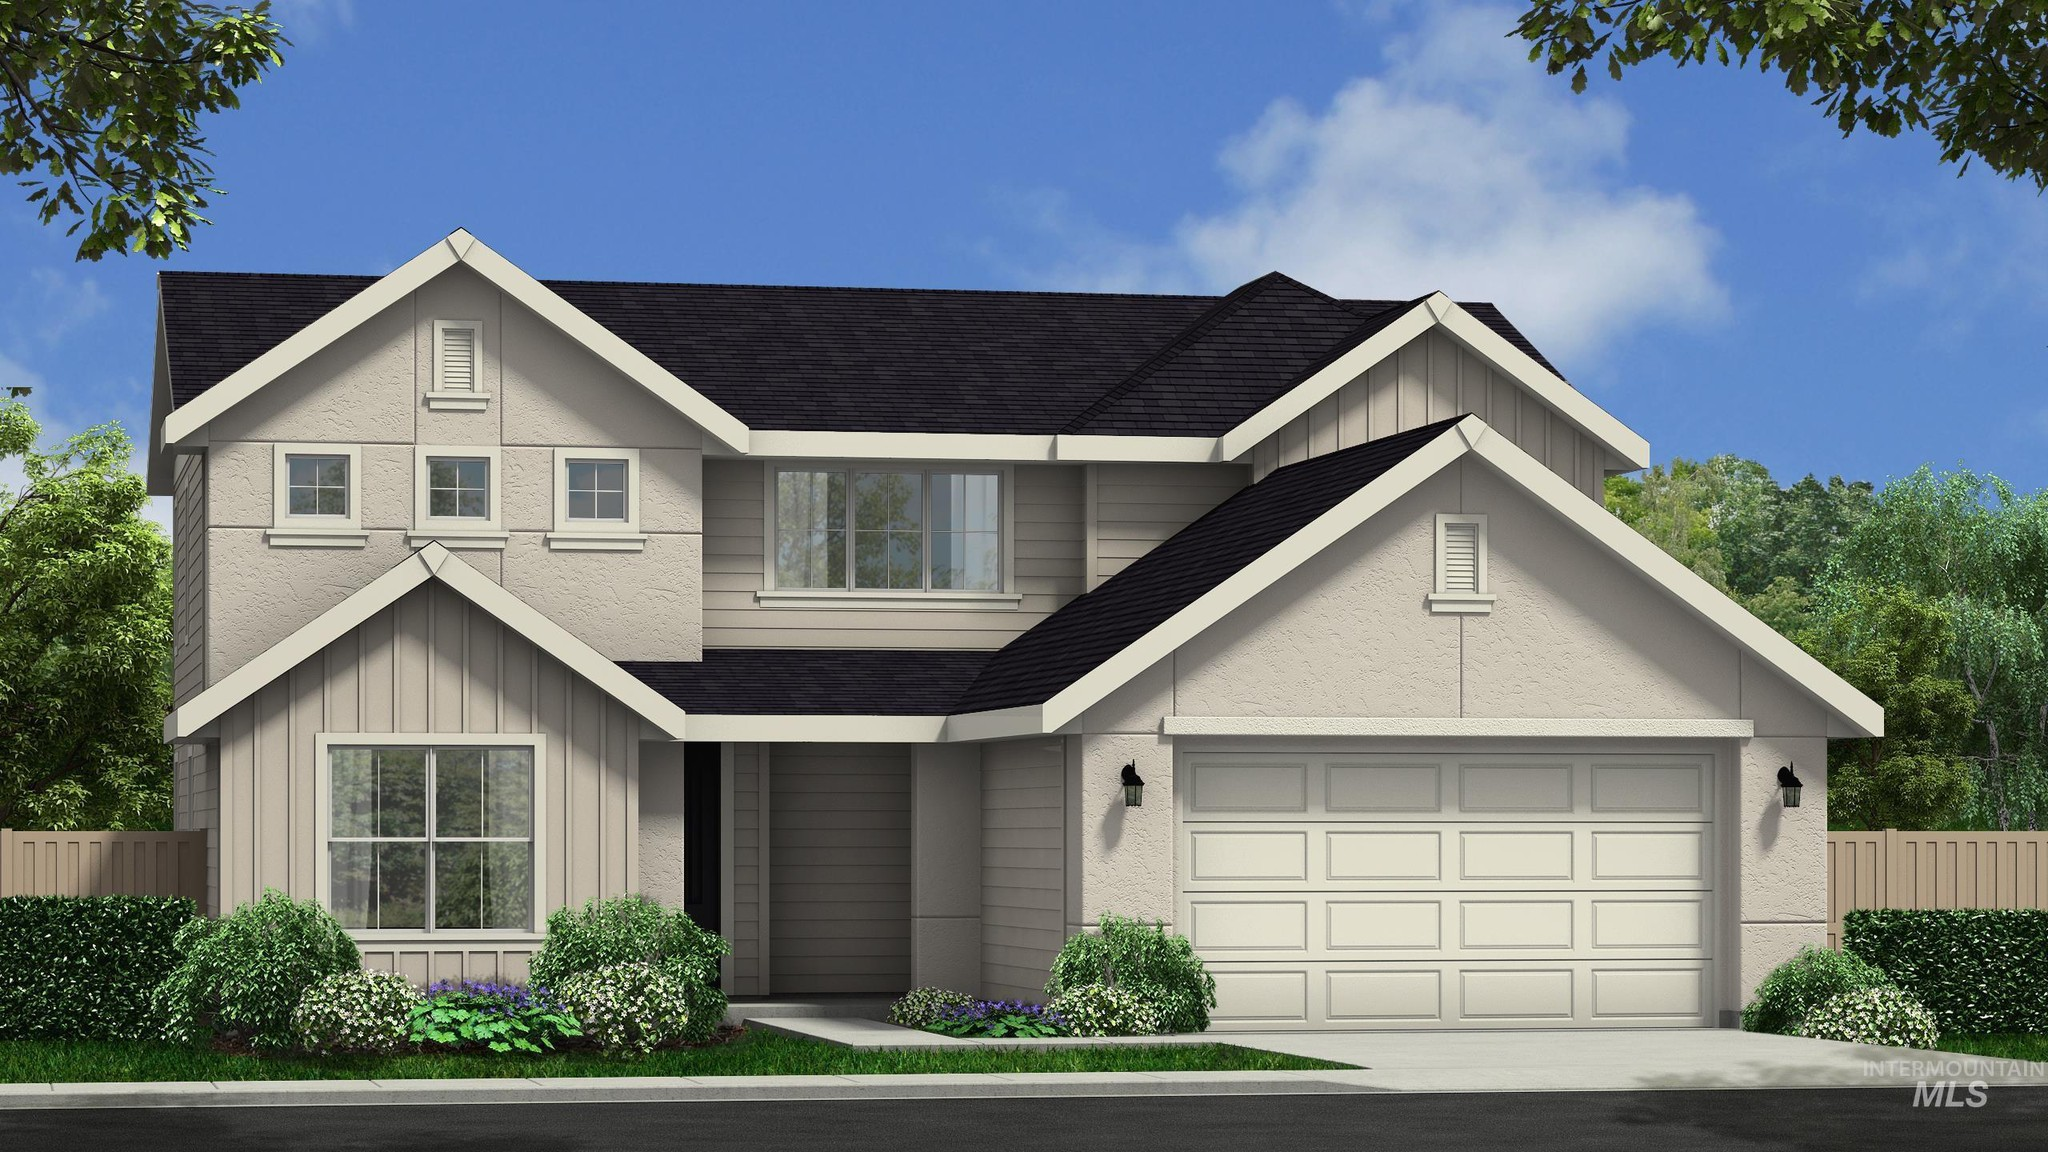 2-Story House In Nampa